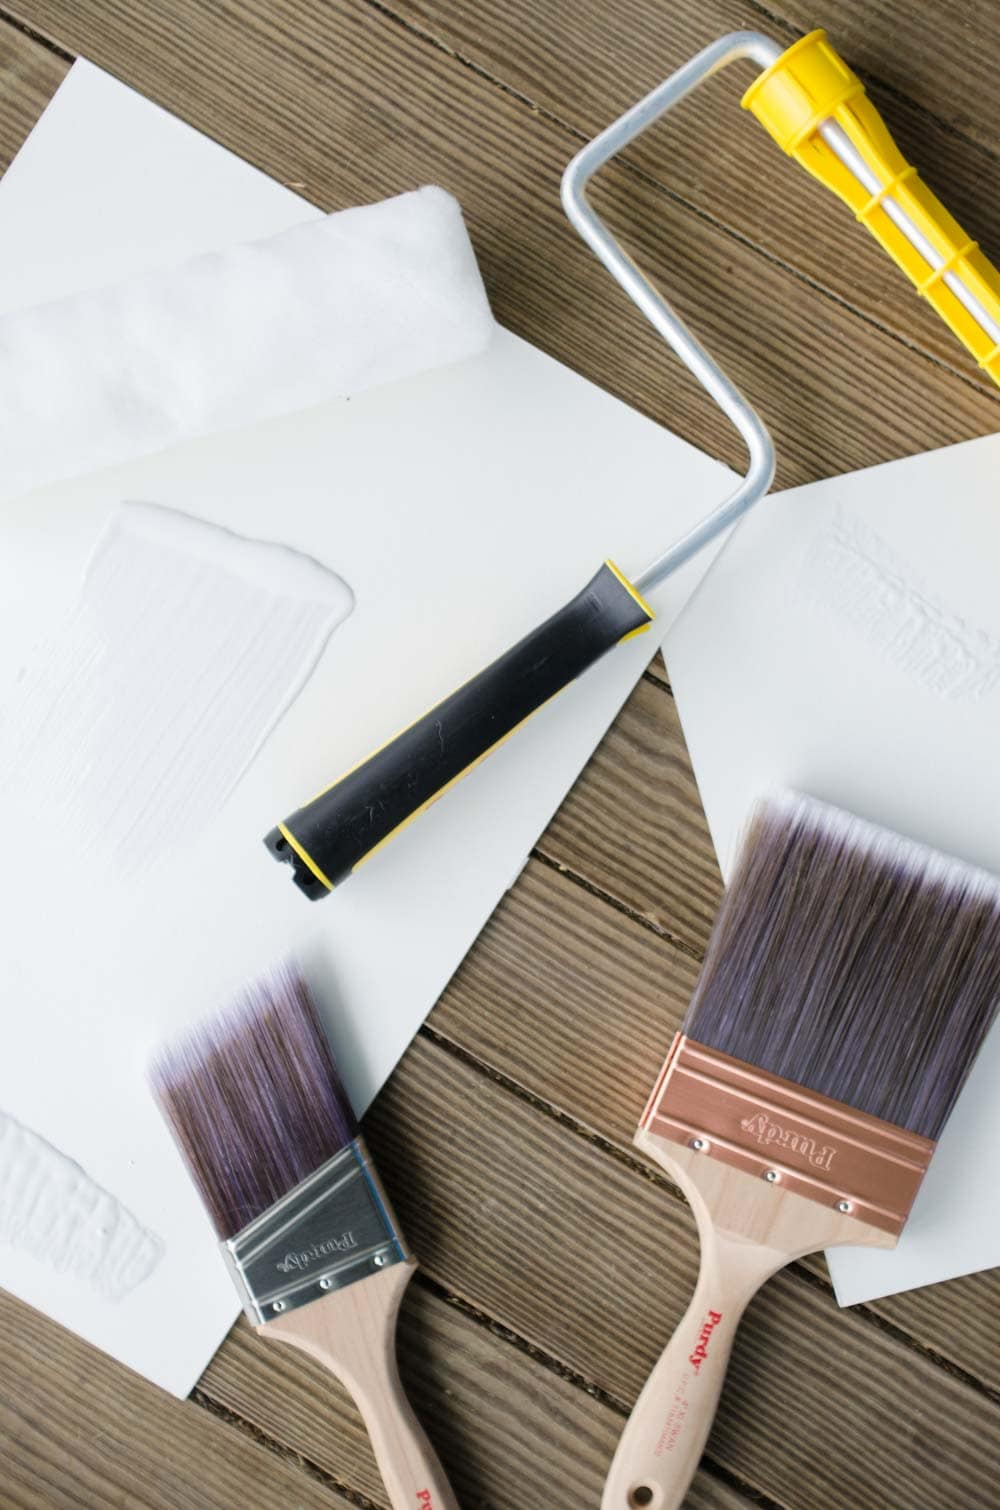 Purdy painting supplies for the One Room Challenge on @thouswellblog